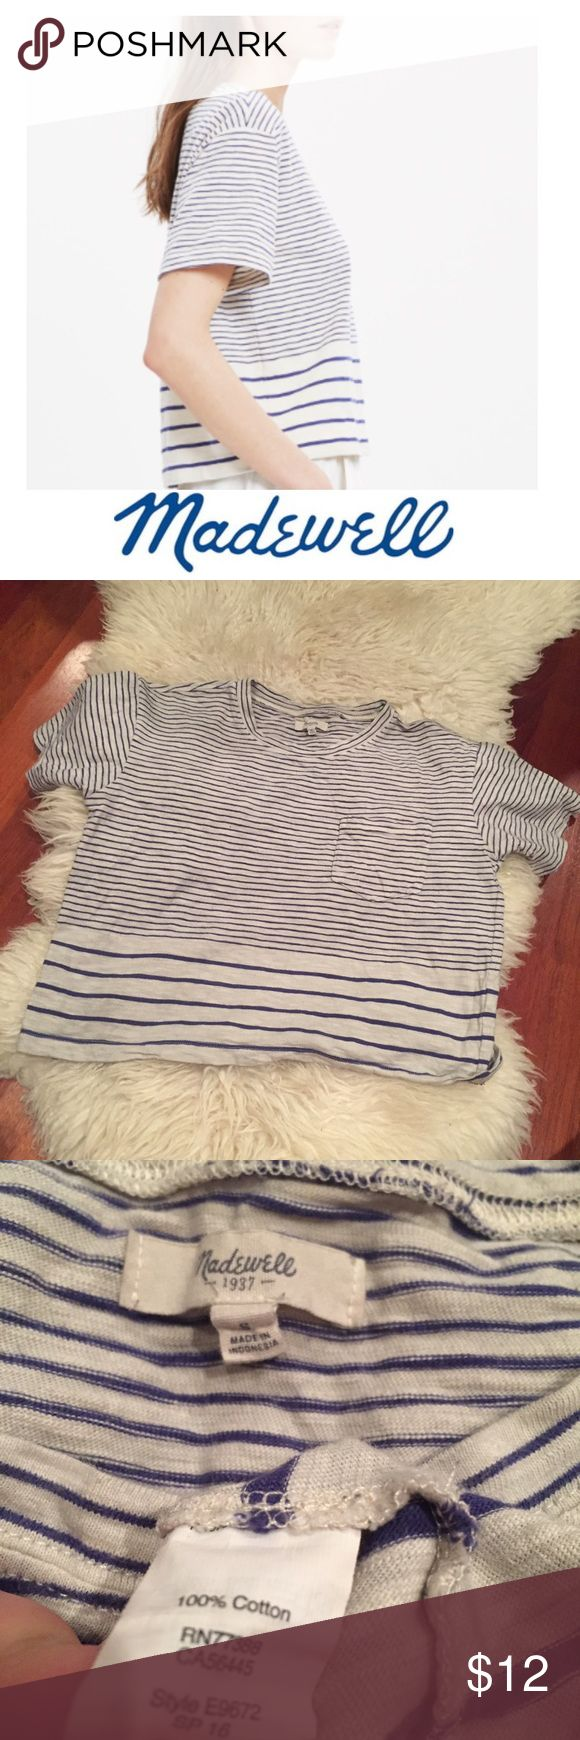 Madewell Striped Gray & Navy Short Sleeve Tee Madewell Striped Gray & Navy Short Sleeve Pocket Tee. 18 inch bust. 19 inches long, cropped and oversized. Gently worn. Great condition. Feel free to make an offer or bundle & save! Madewell Tops Tees - Short Sleeve